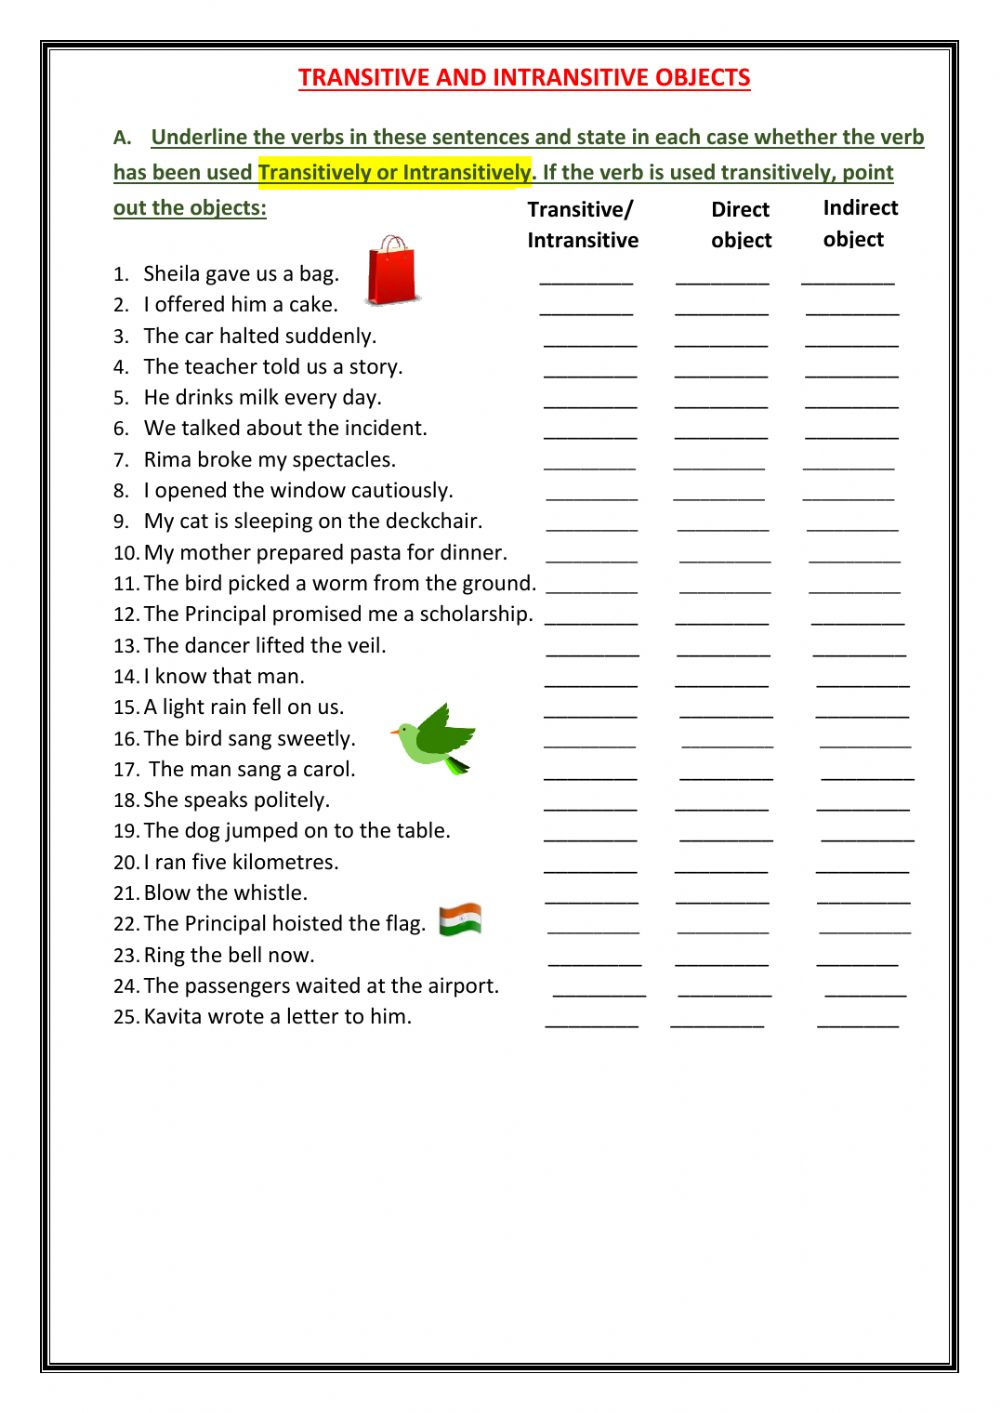 Transitive And Intransitive Verbs Worksheet : transitive, intransitive, verbs, worksheet, Transitive-Intransitive, Verbs, Worksheet